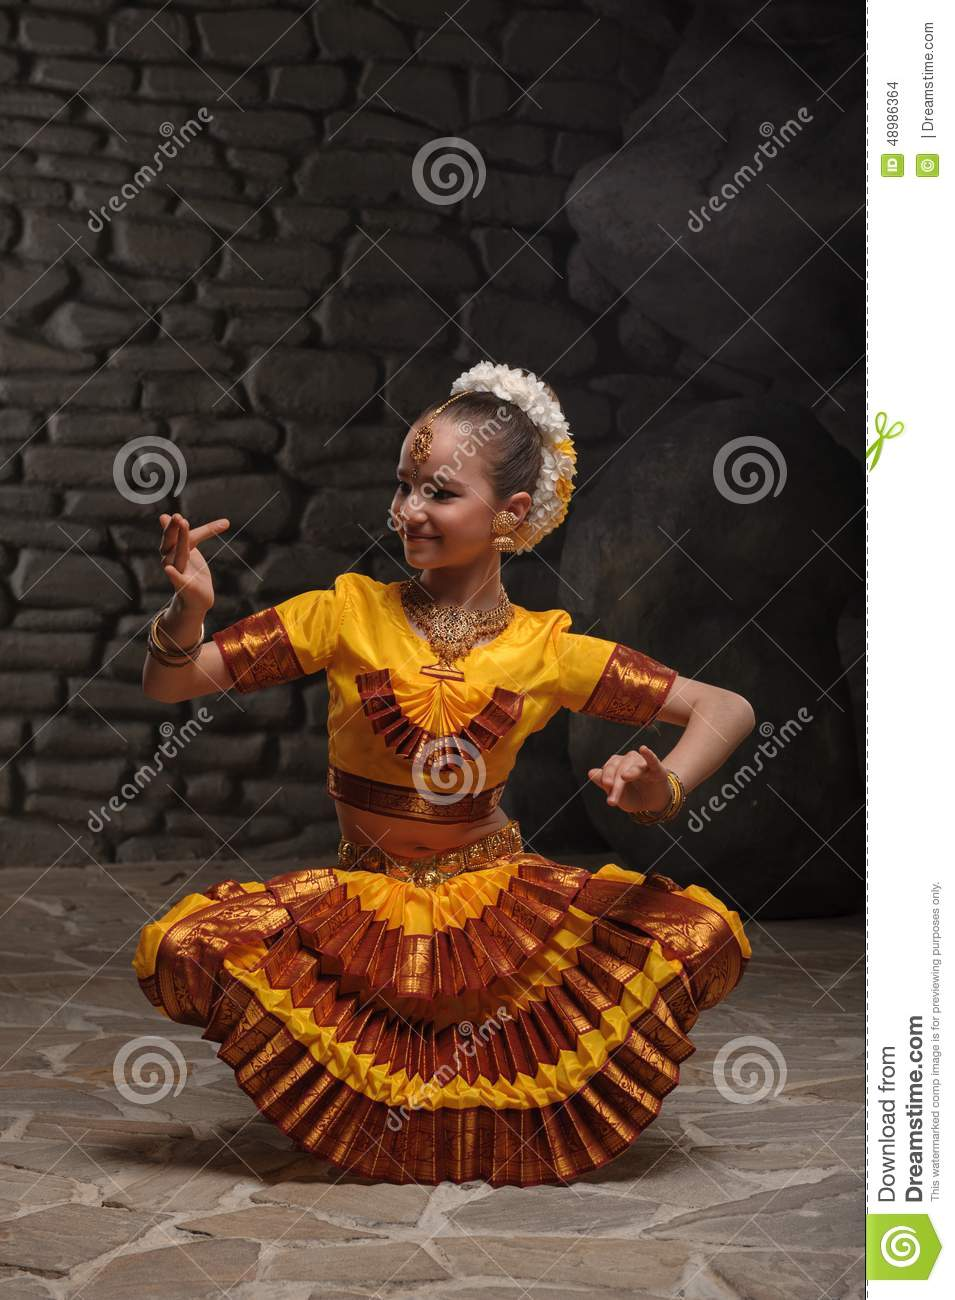 Indian Dancing Girl Stone Bewitching Dance Sunset Little National Suit Stiffened Mystical Pose Against Stones